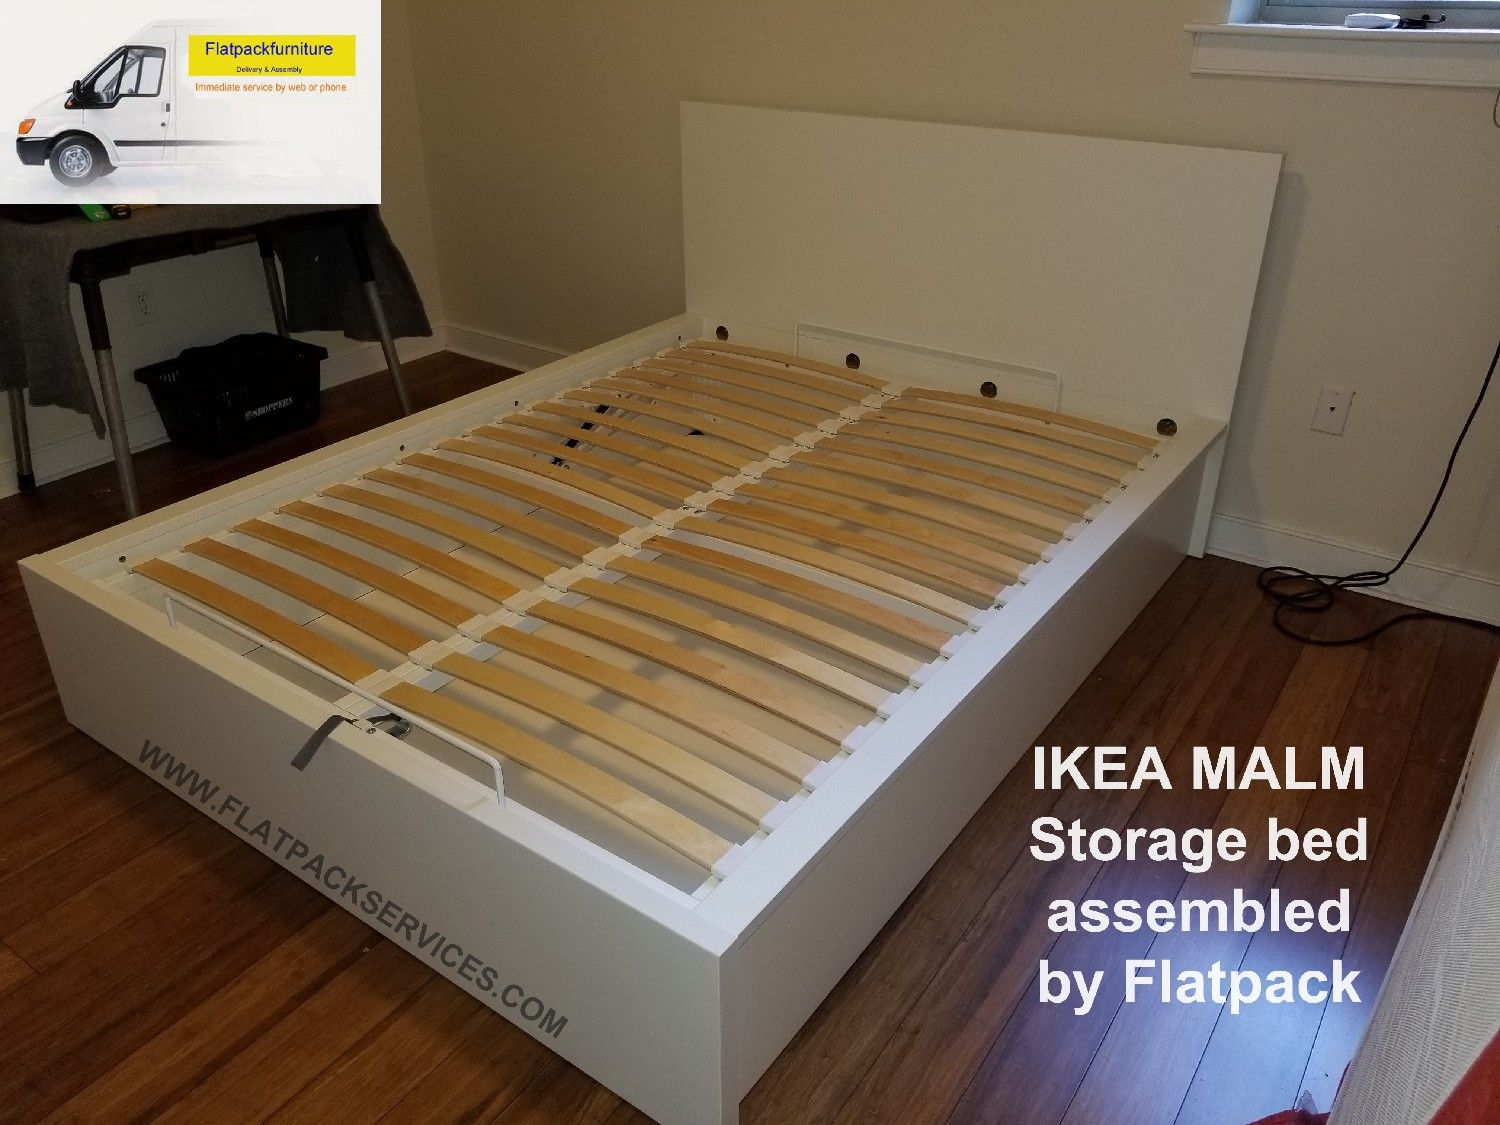 Merveilleux Malm Storage Bed Assembled By Flatpack Assembly 240 603 2781 | IKEA  Services | Assembly Service U2013 IKEA Services   Furniture Delivery U0026 Assembly    IKEA ...